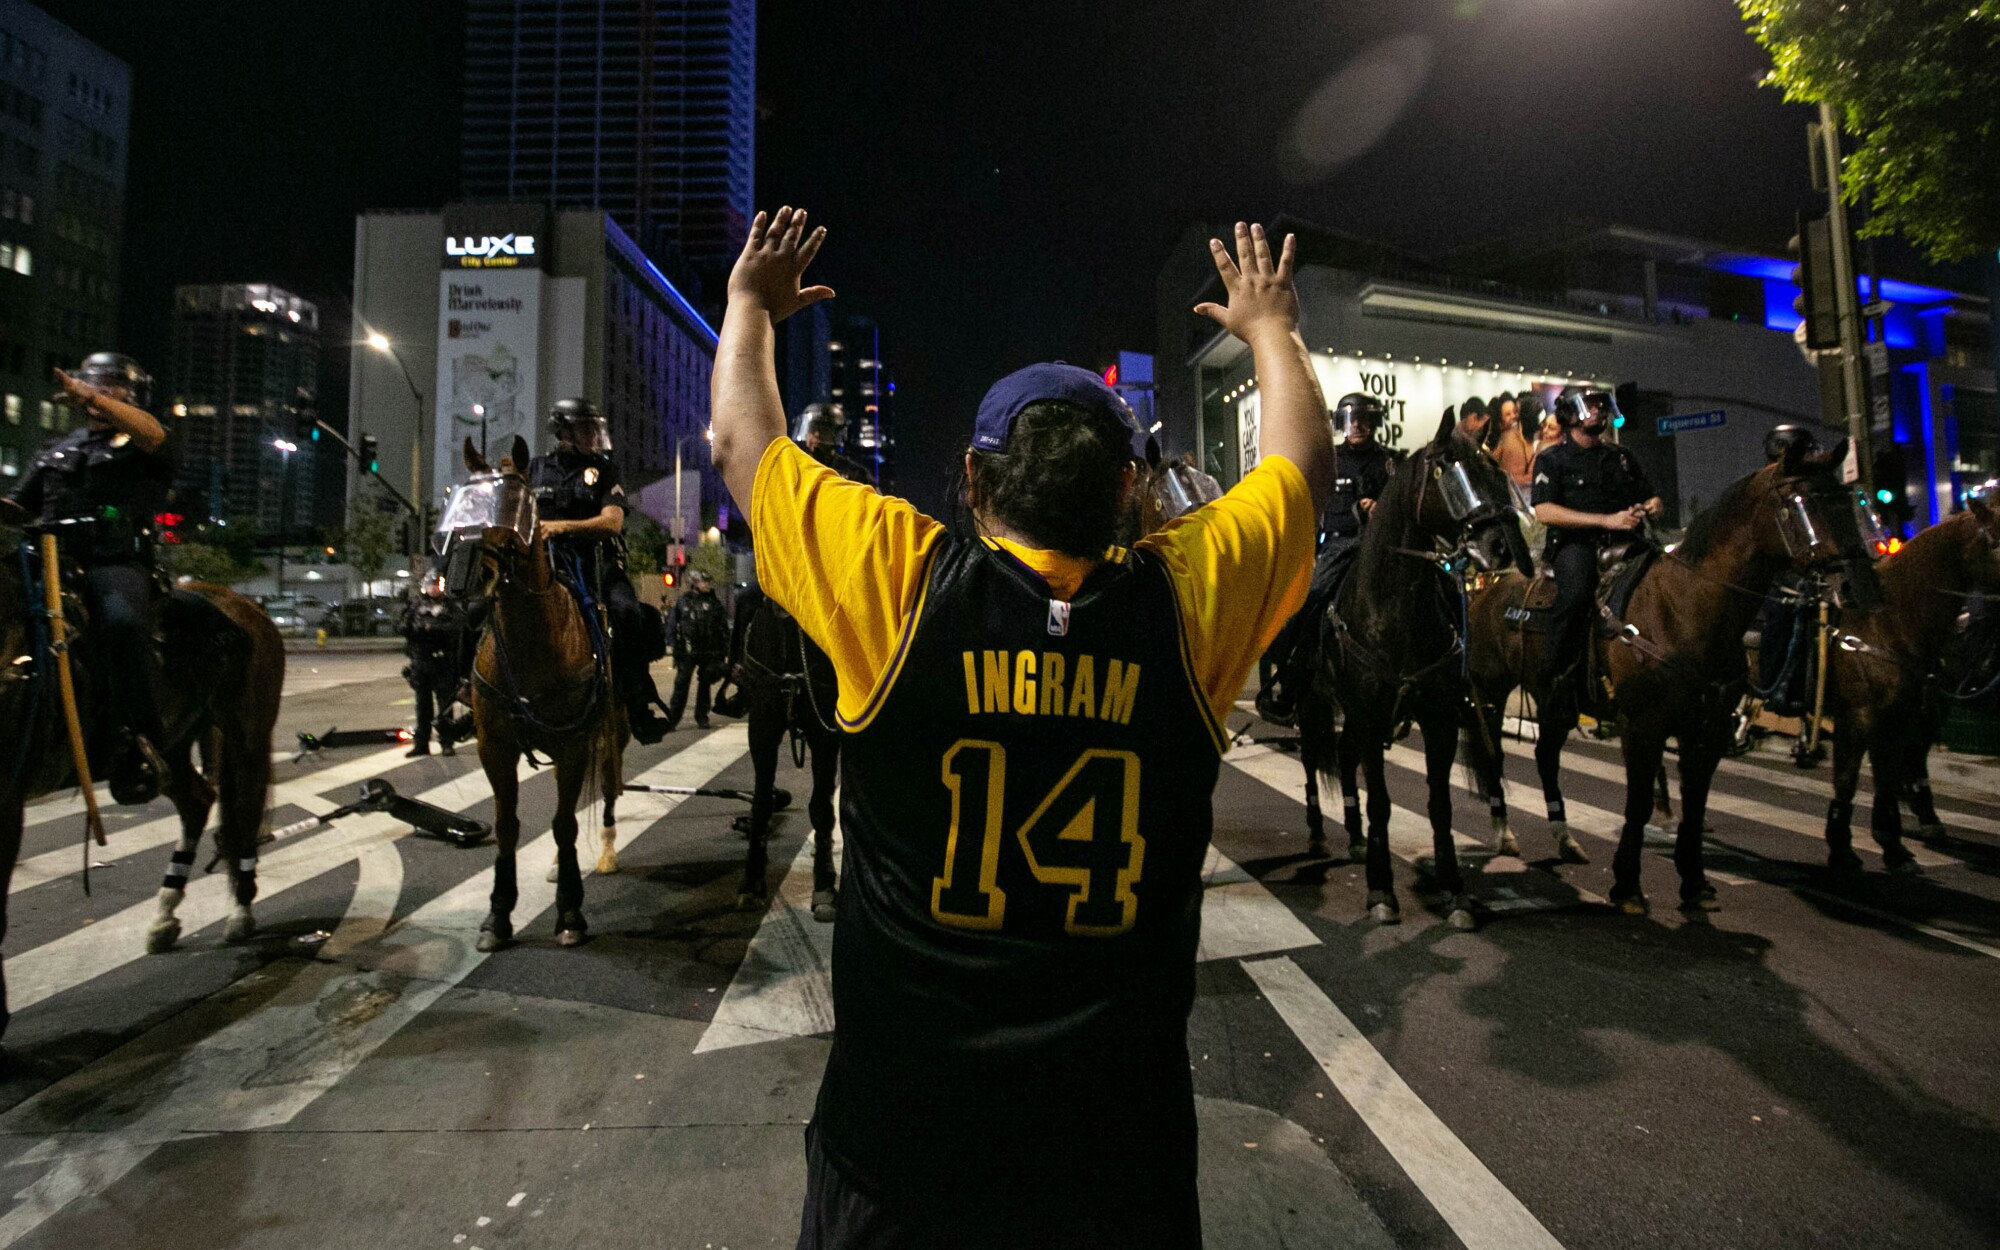 LAPD officers on horses clear the area near L.A. Live, declaring an unlawful assembly.